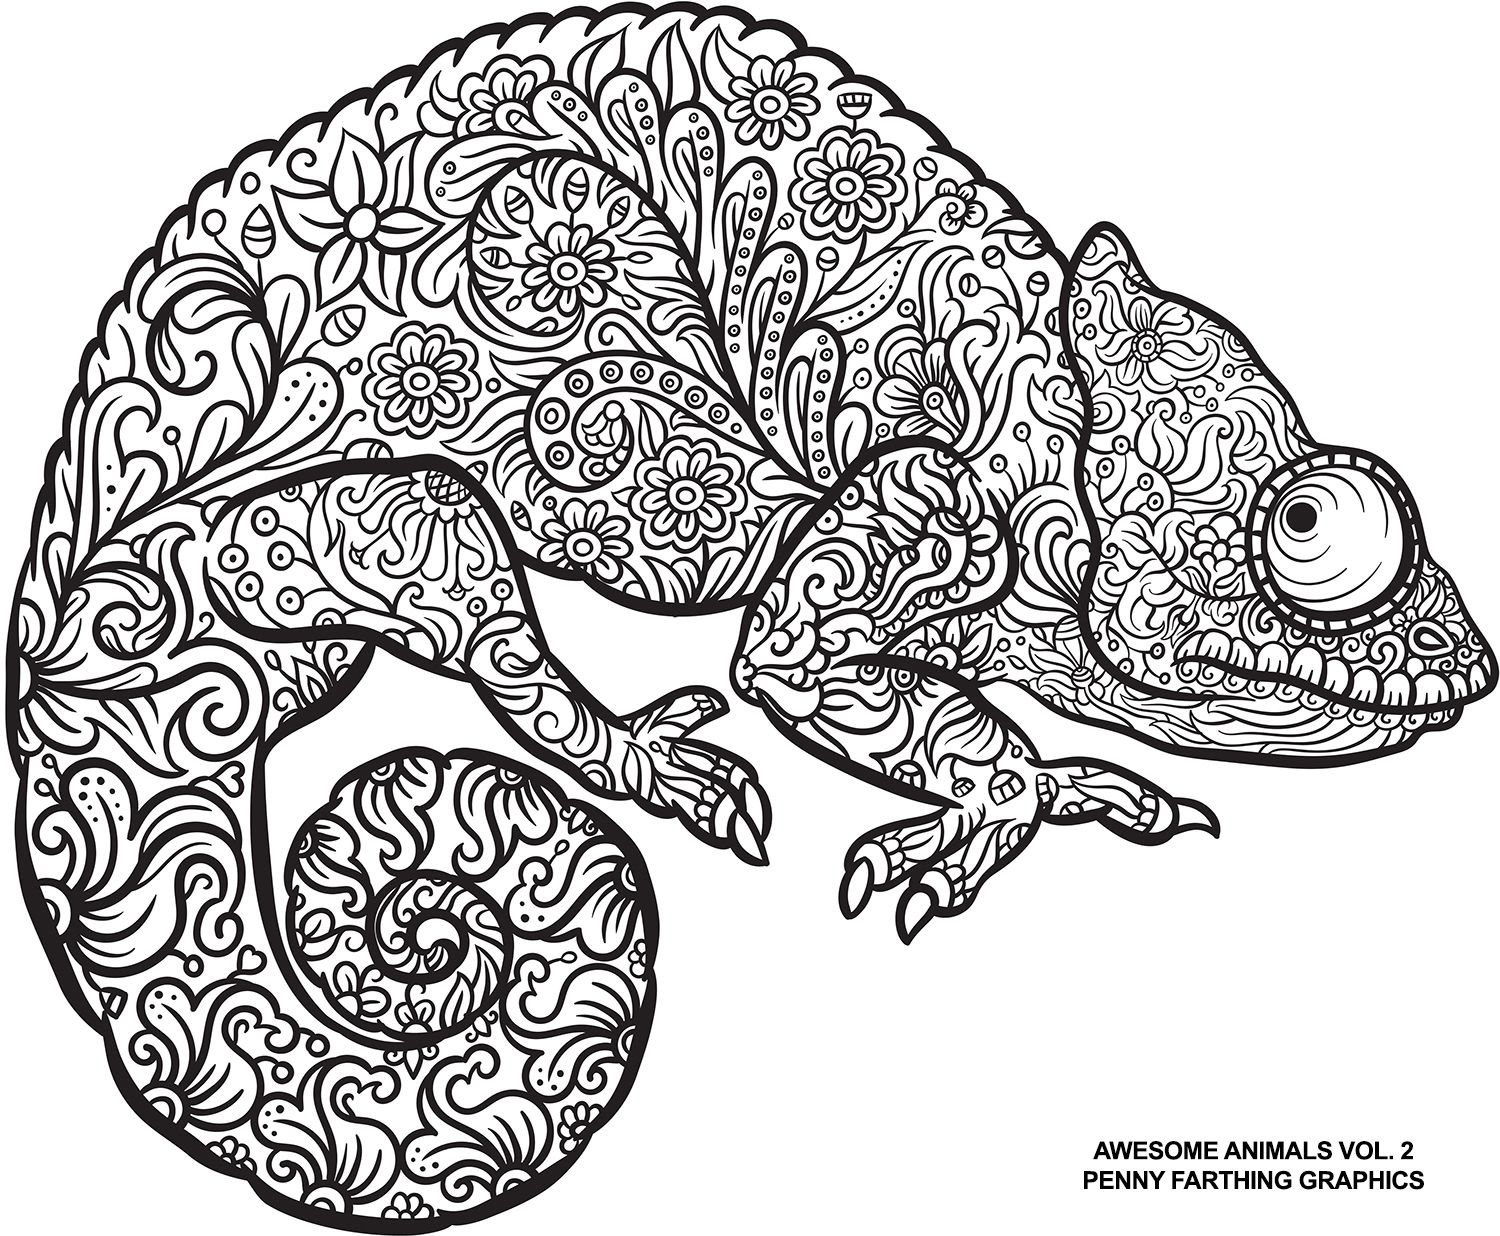 Lizard from awesome animals vol 2 coloring books for Lizard coloring pages